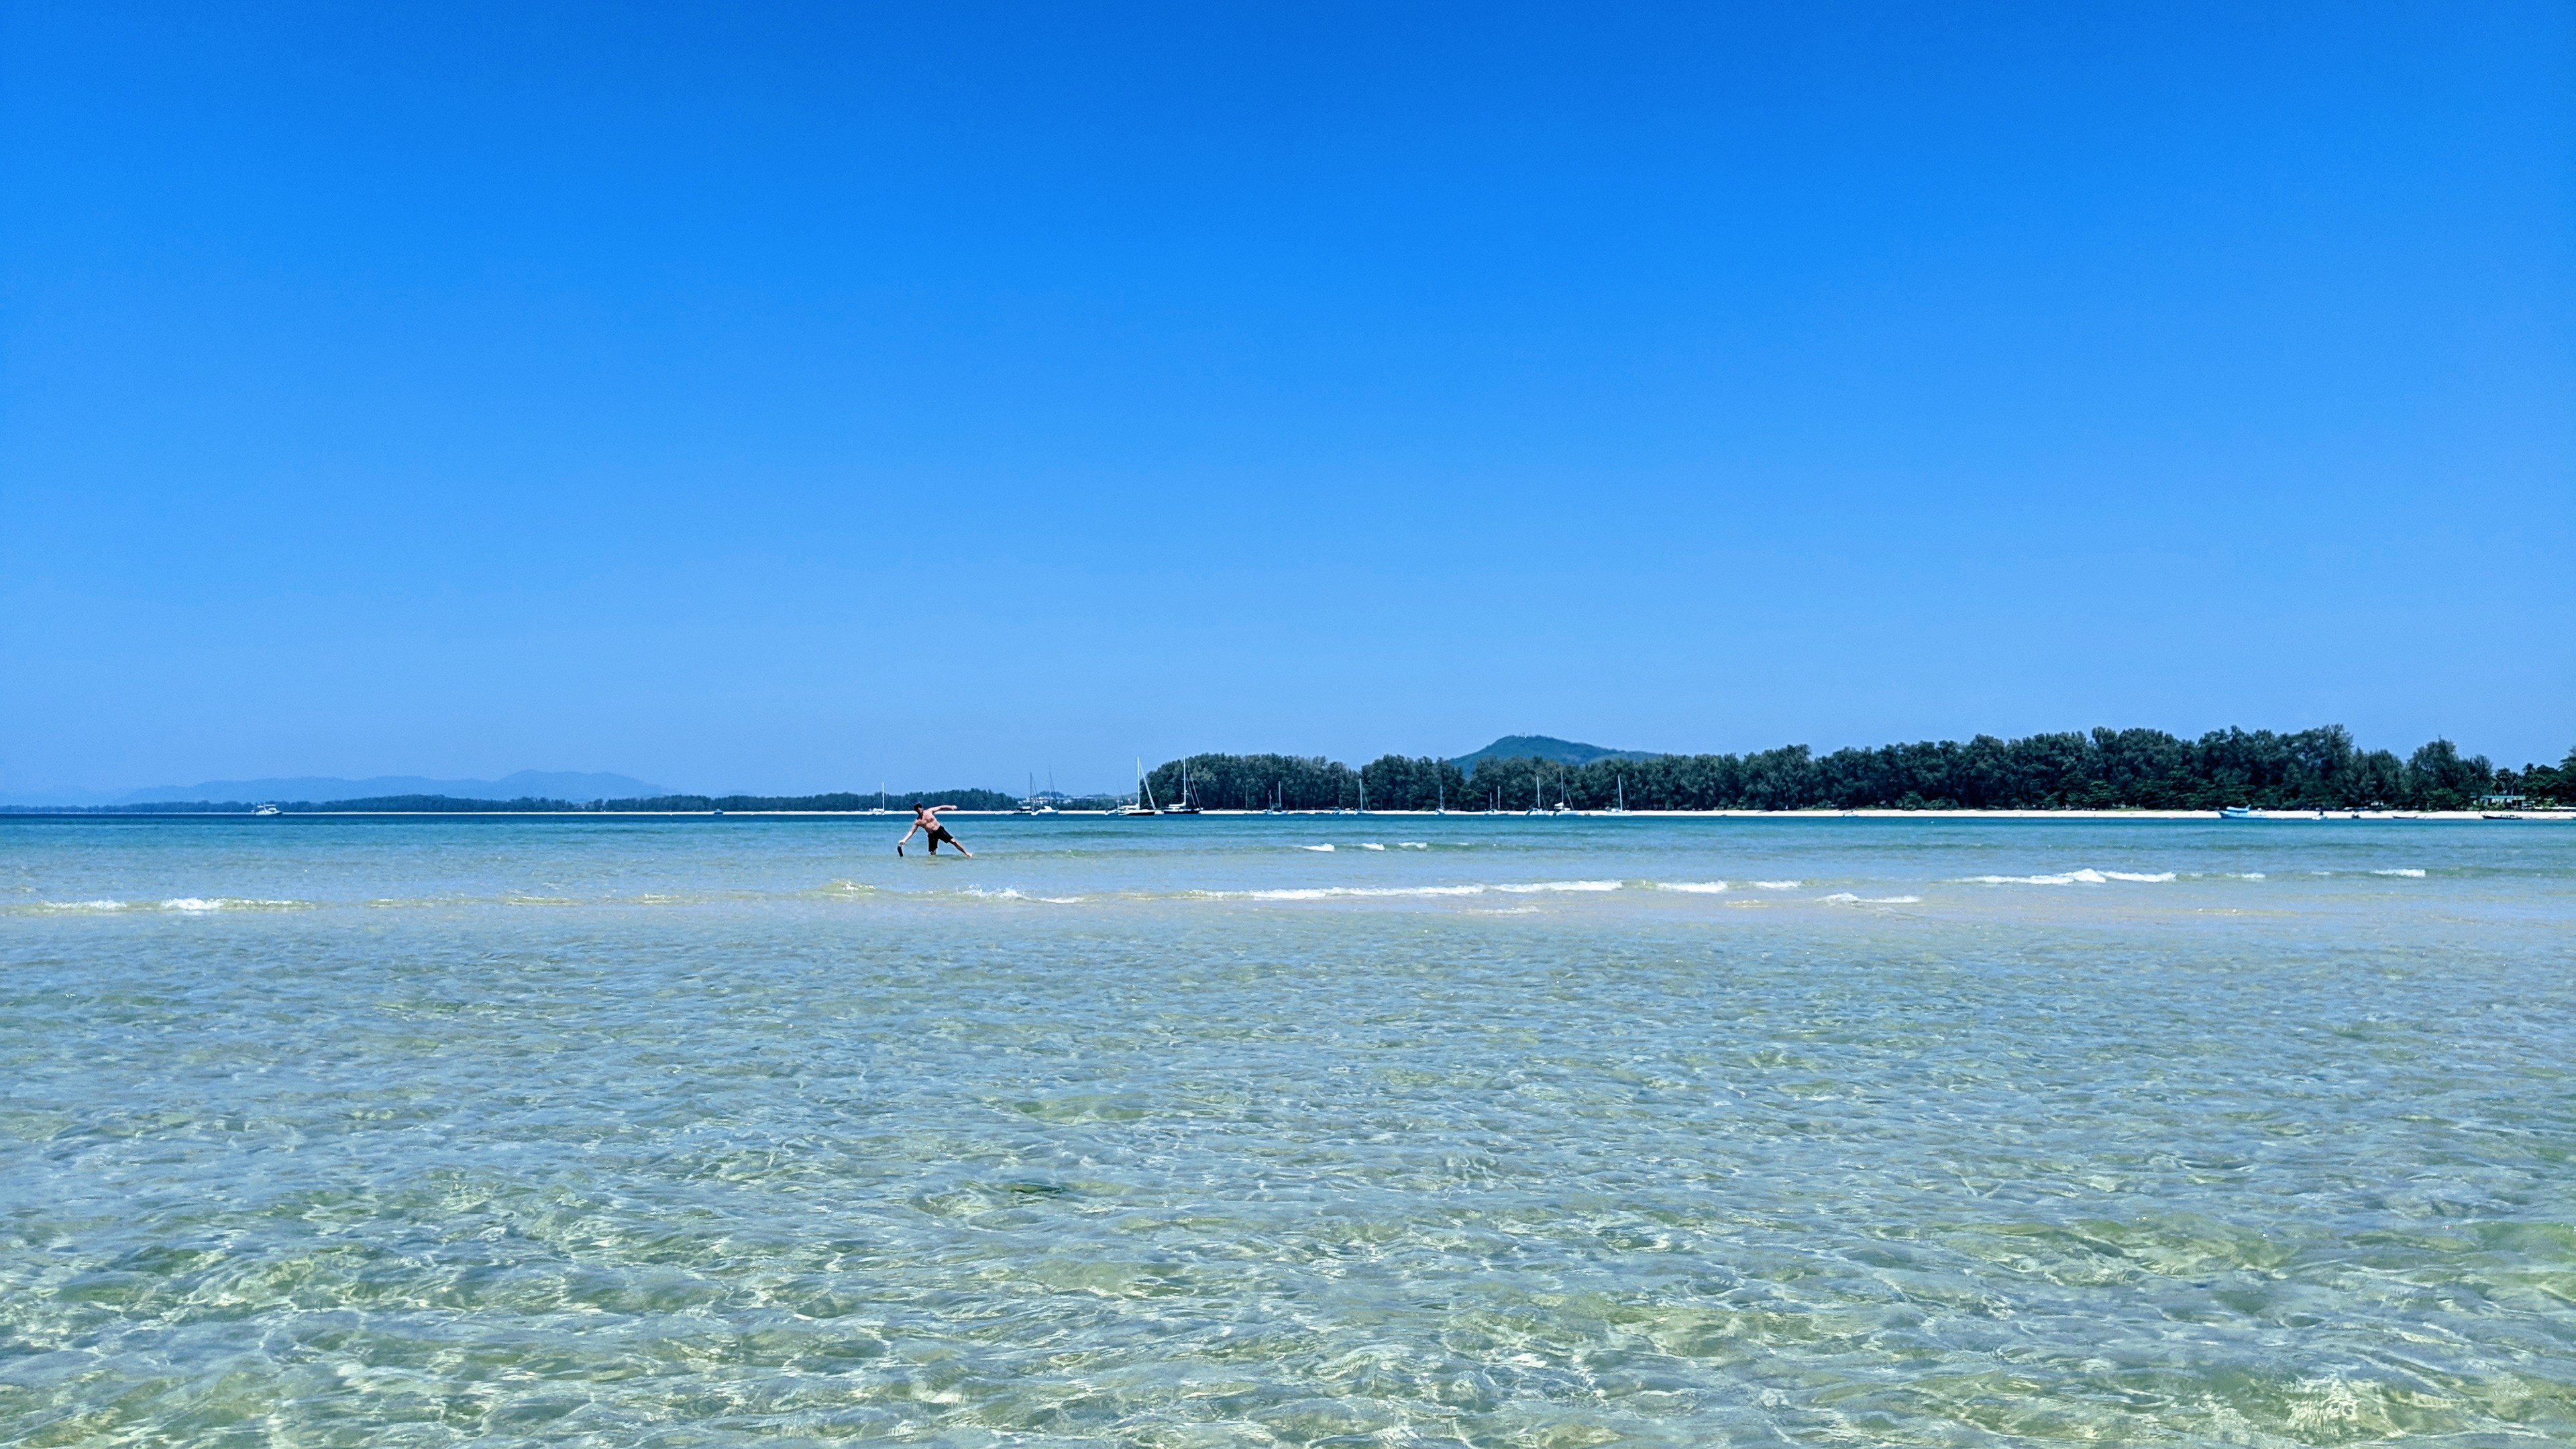 Crystal clear turquoise water of Nai Yang Beach's cove